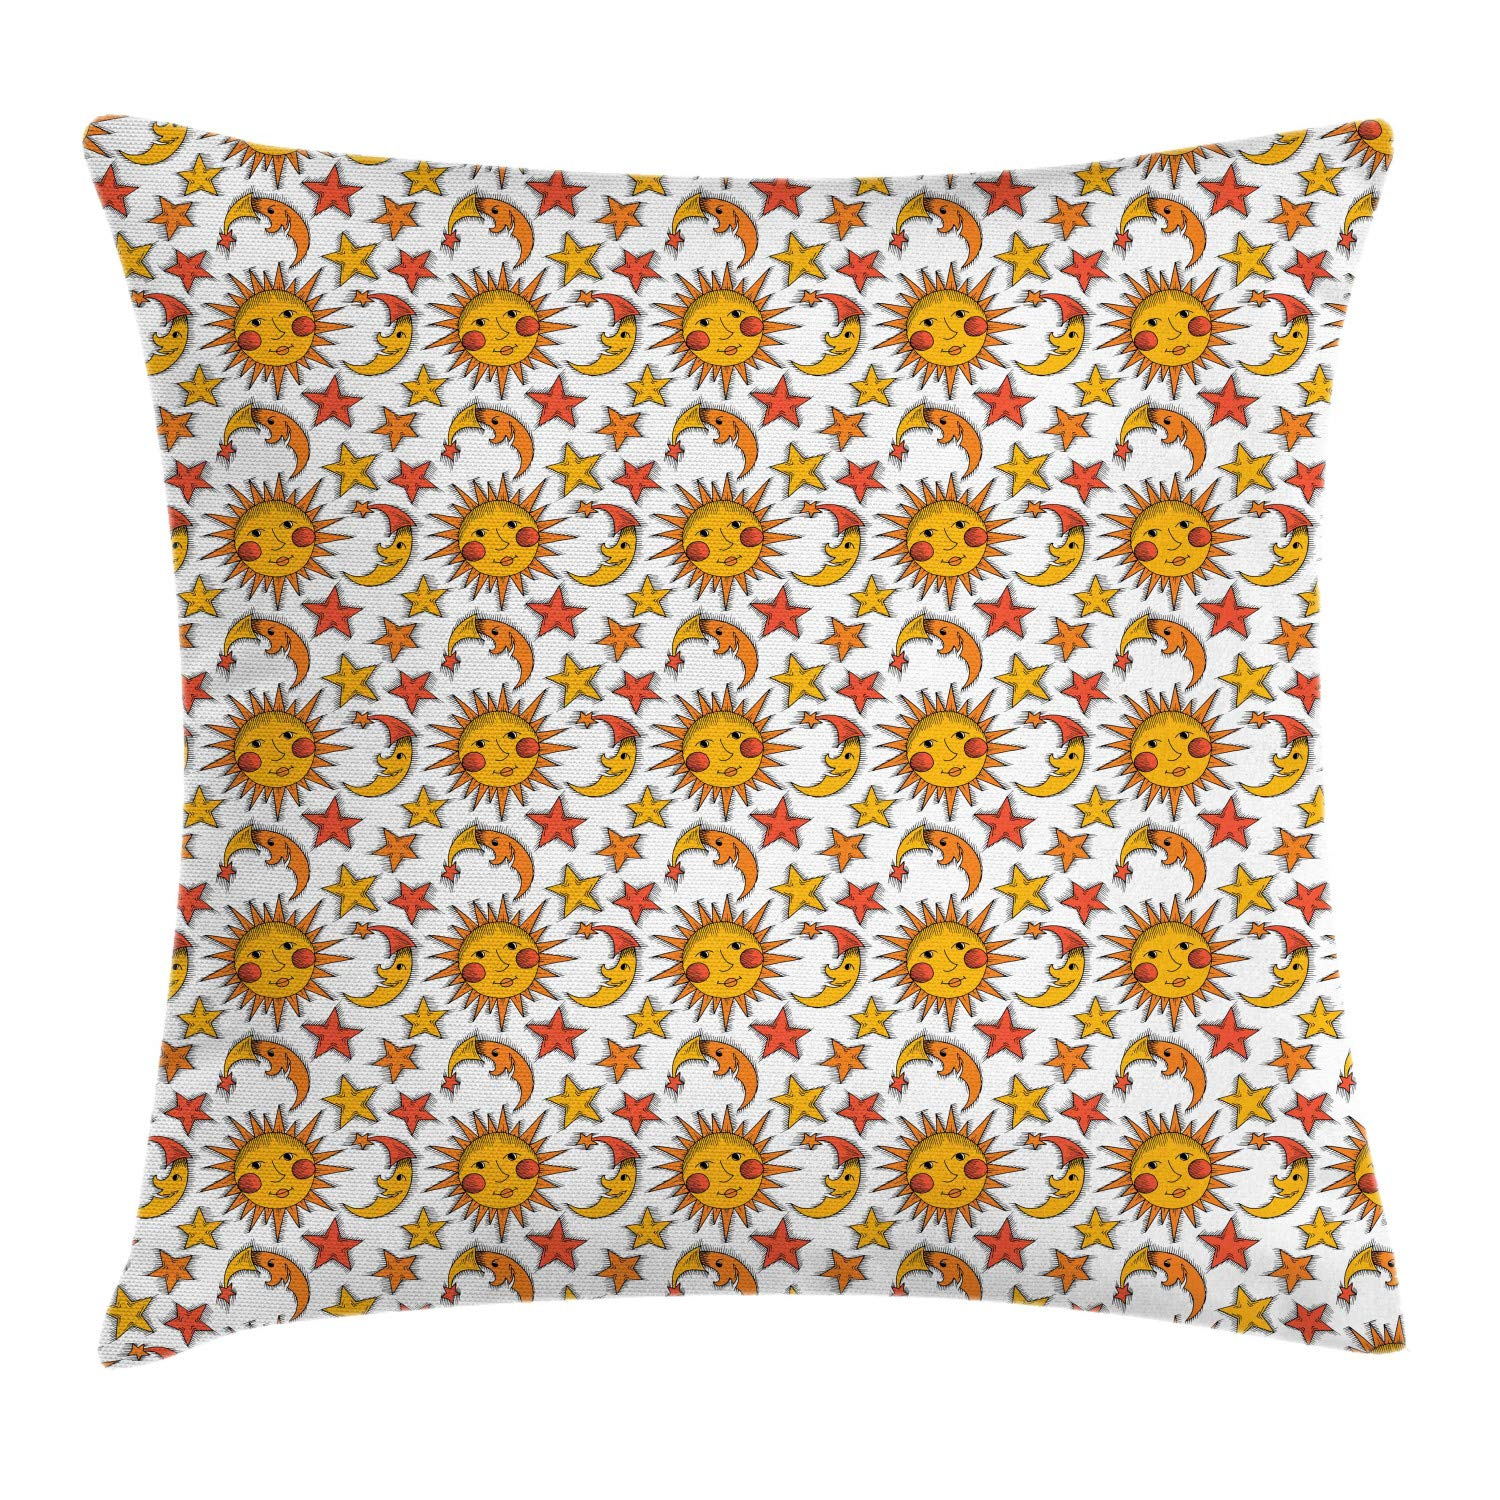 Lunarable Sun Throw Pillow Cushion Cover, Nursery Themed Repetitive Pattern with Sun Moon and Stars, Decorative Square Accent Pillow Case, 24'' X 24'', Earth Yellow Orange Burnt Sienna White by Lunarable